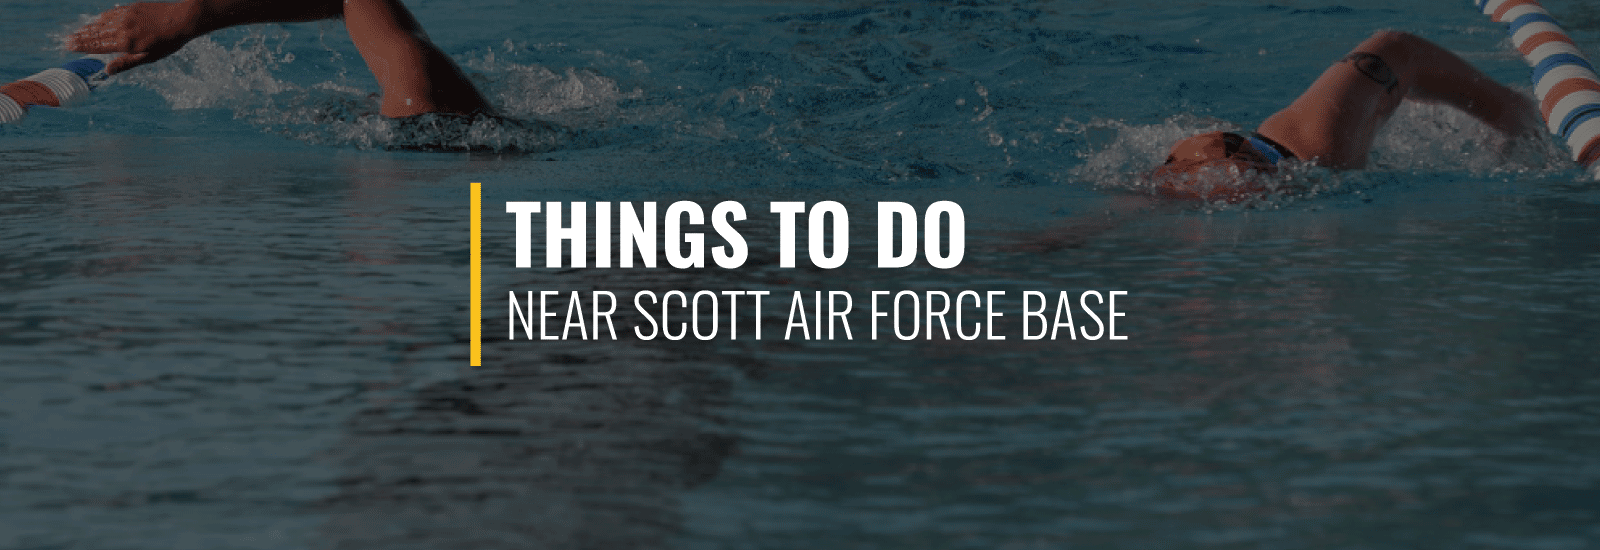 Things To Do Scott AFB